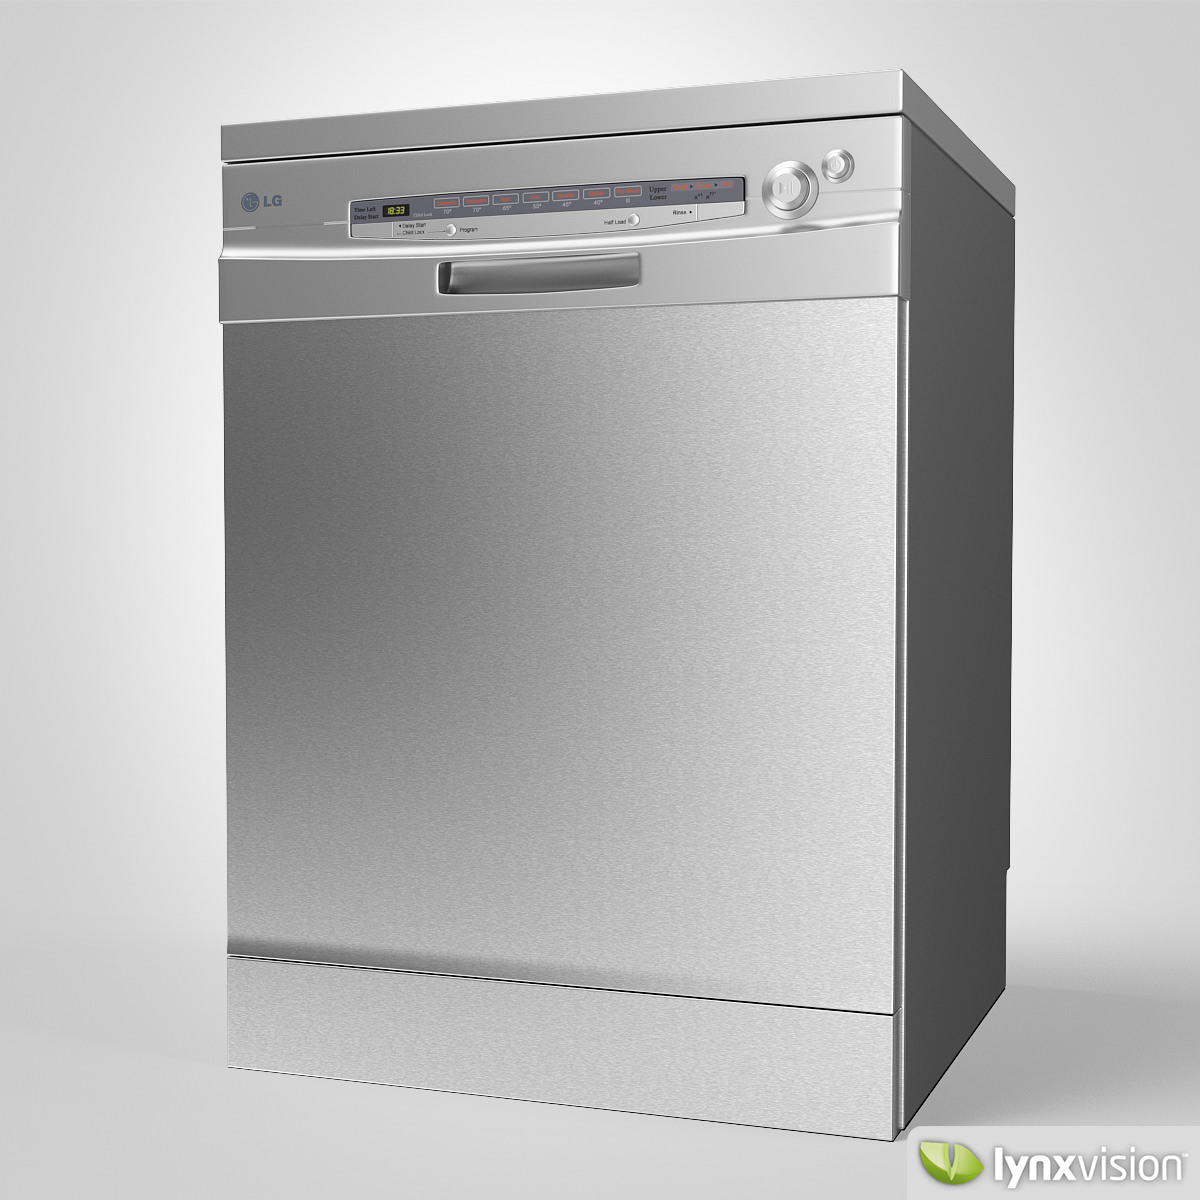 LG Dishwasher 3D Model Max Obj Fbx